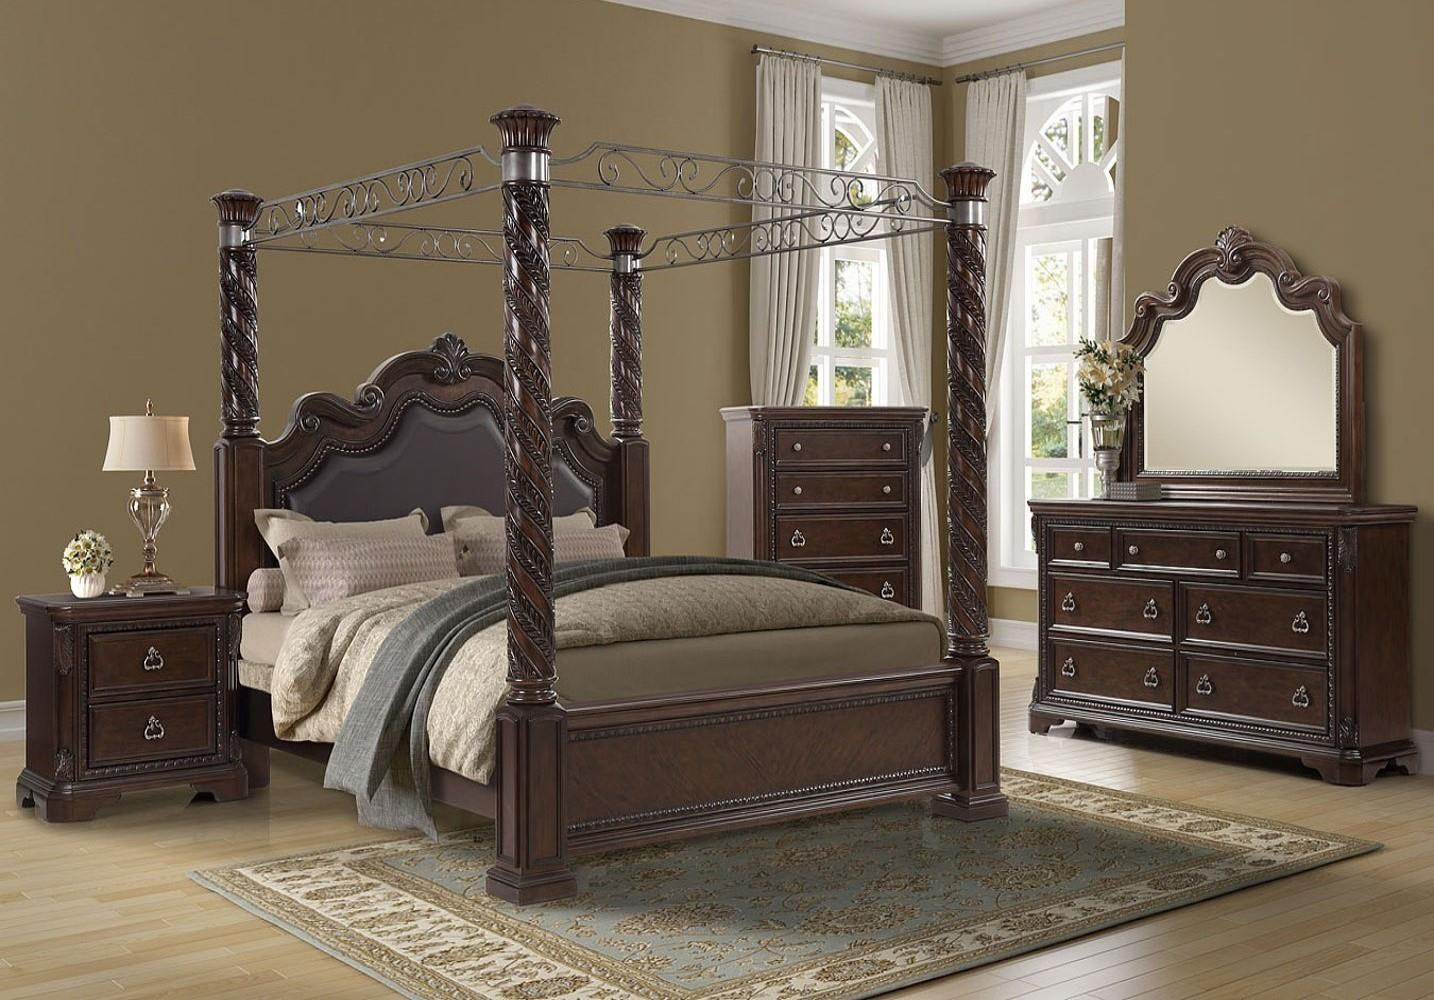 Coventry 5 Pc Queen Bedroom